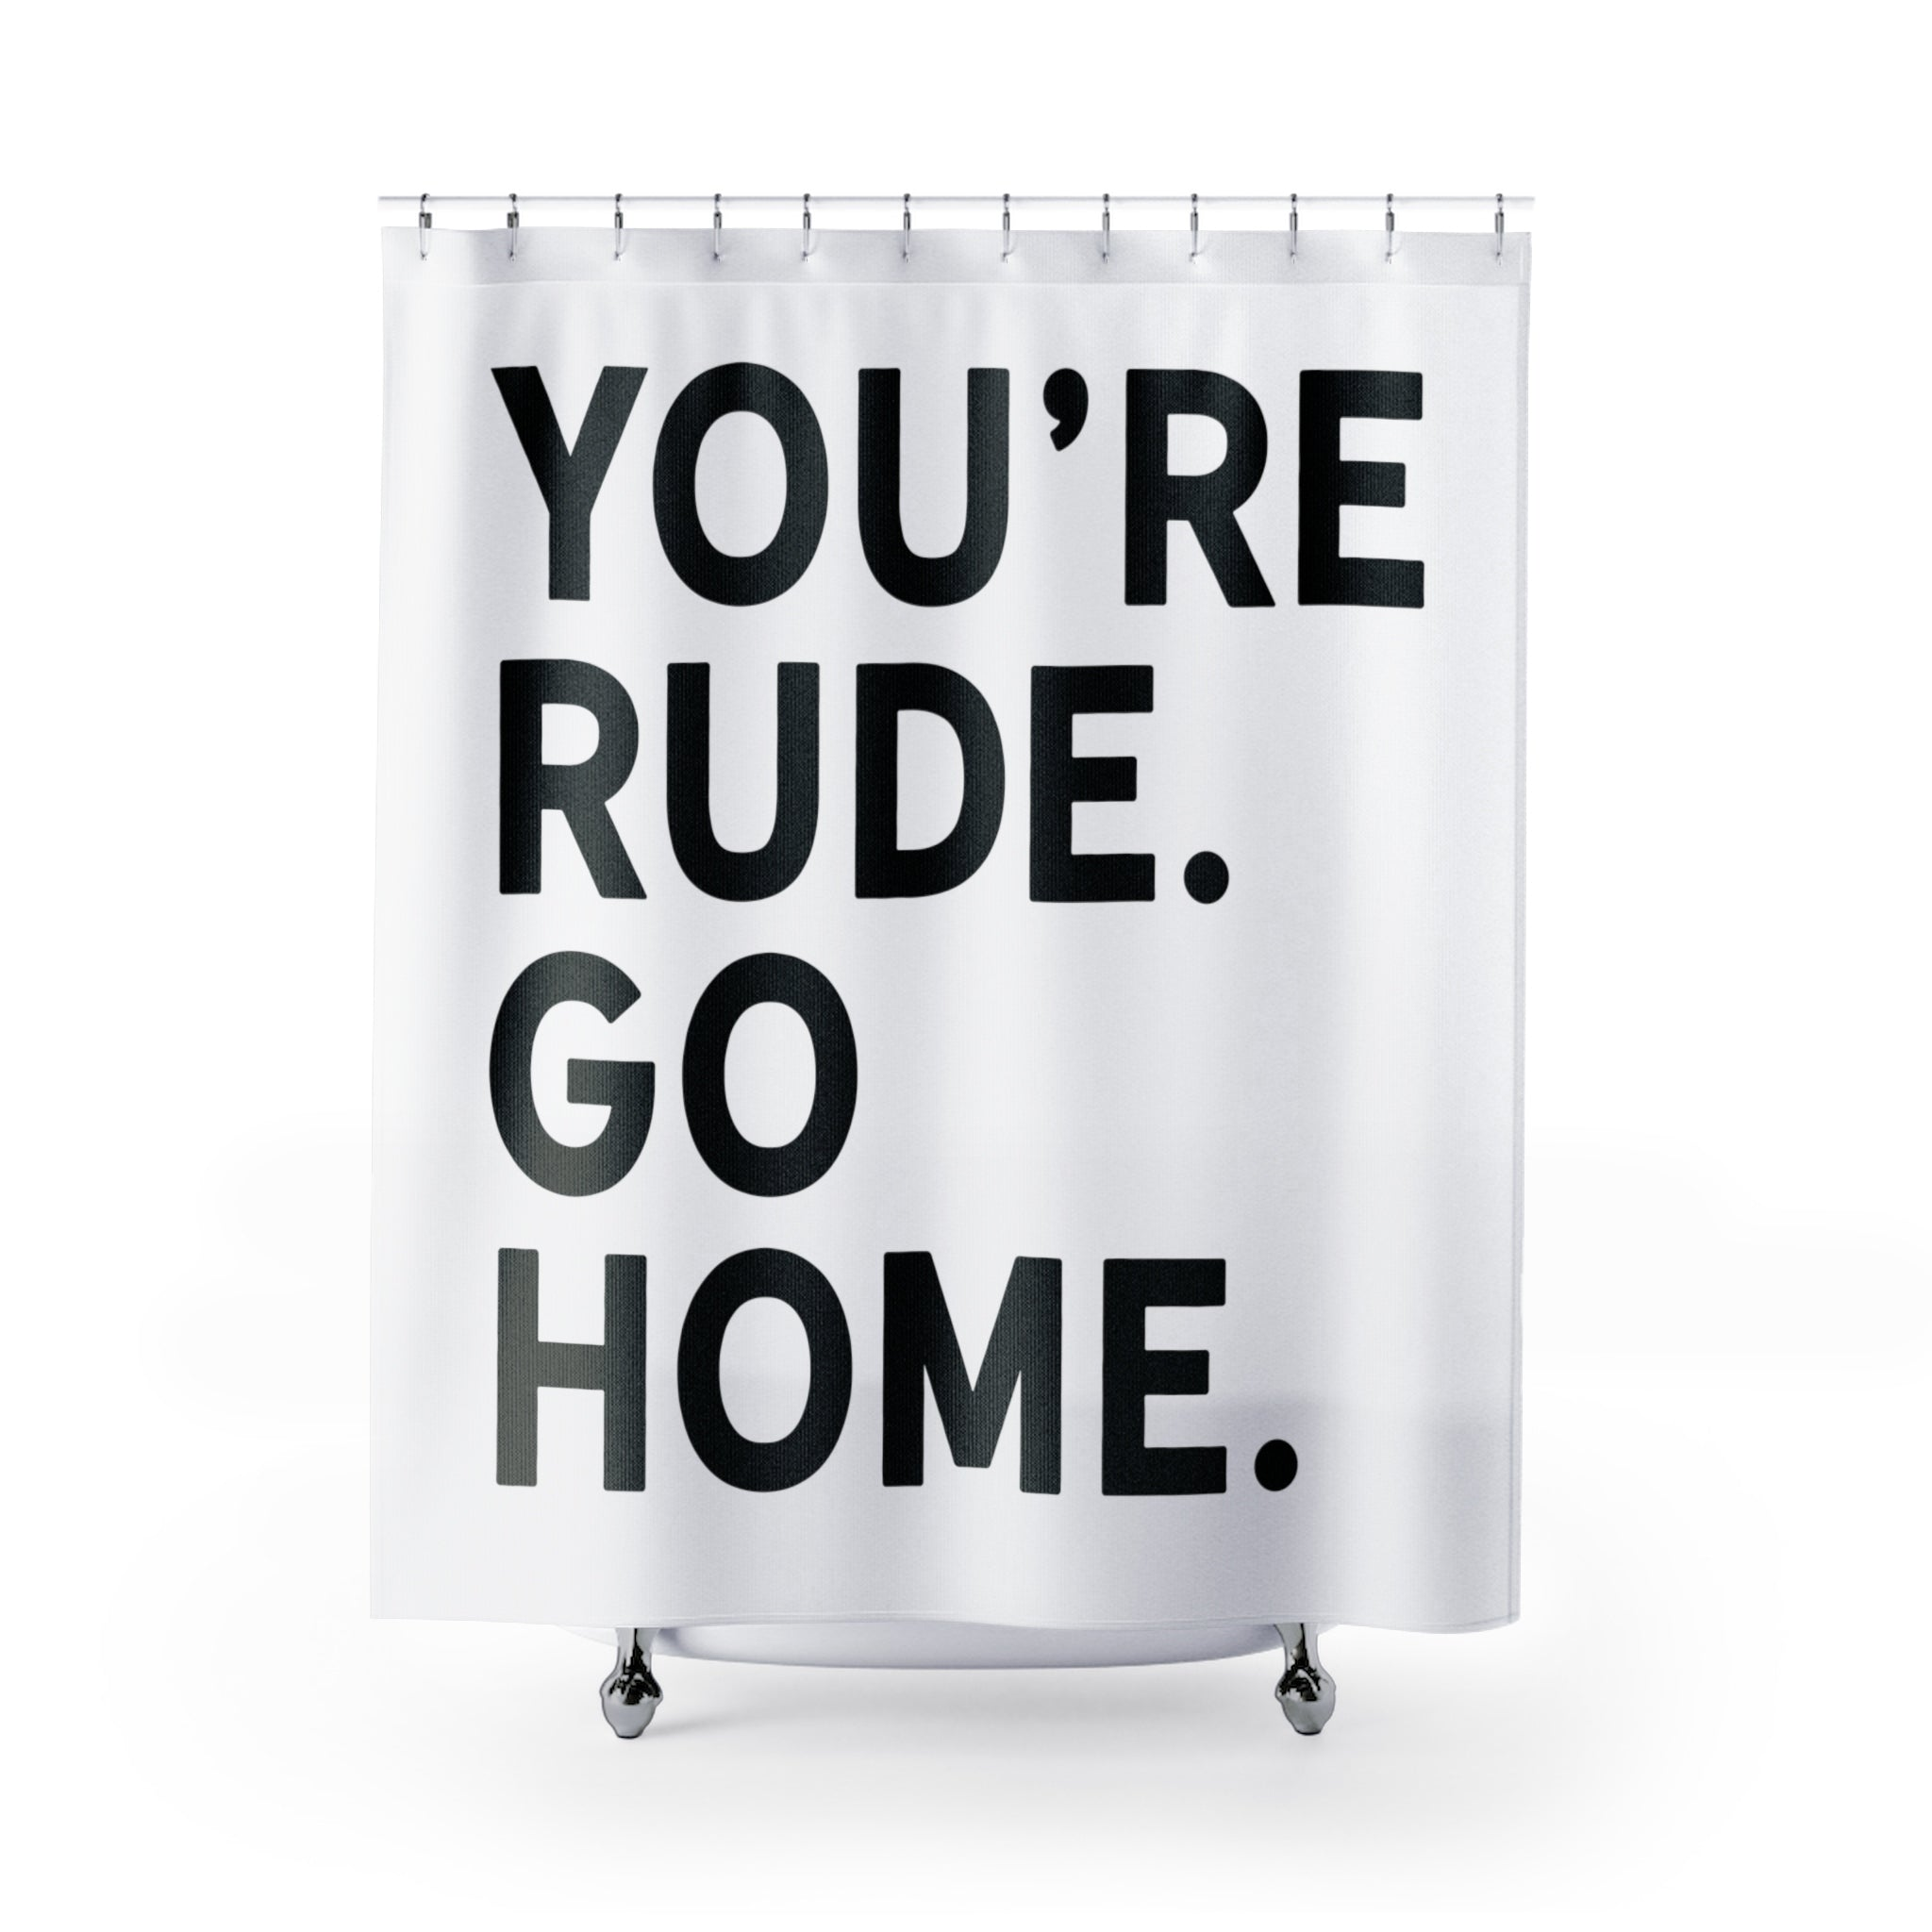 You're Rude. Go Home. - Shower Curtain